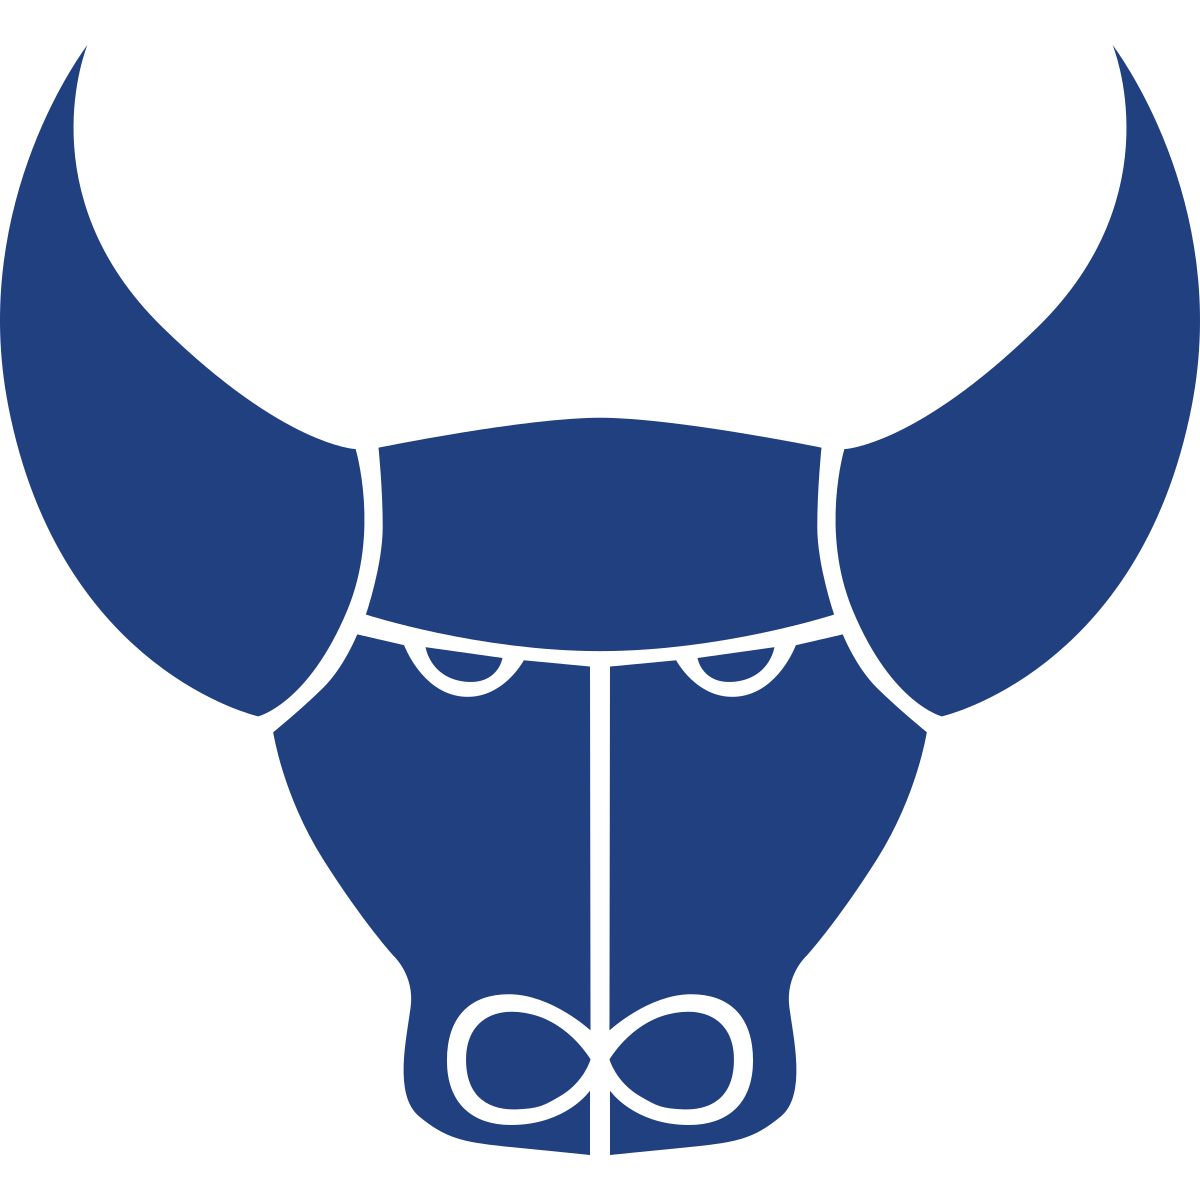 Horn clipart carabao. First team safc oxford